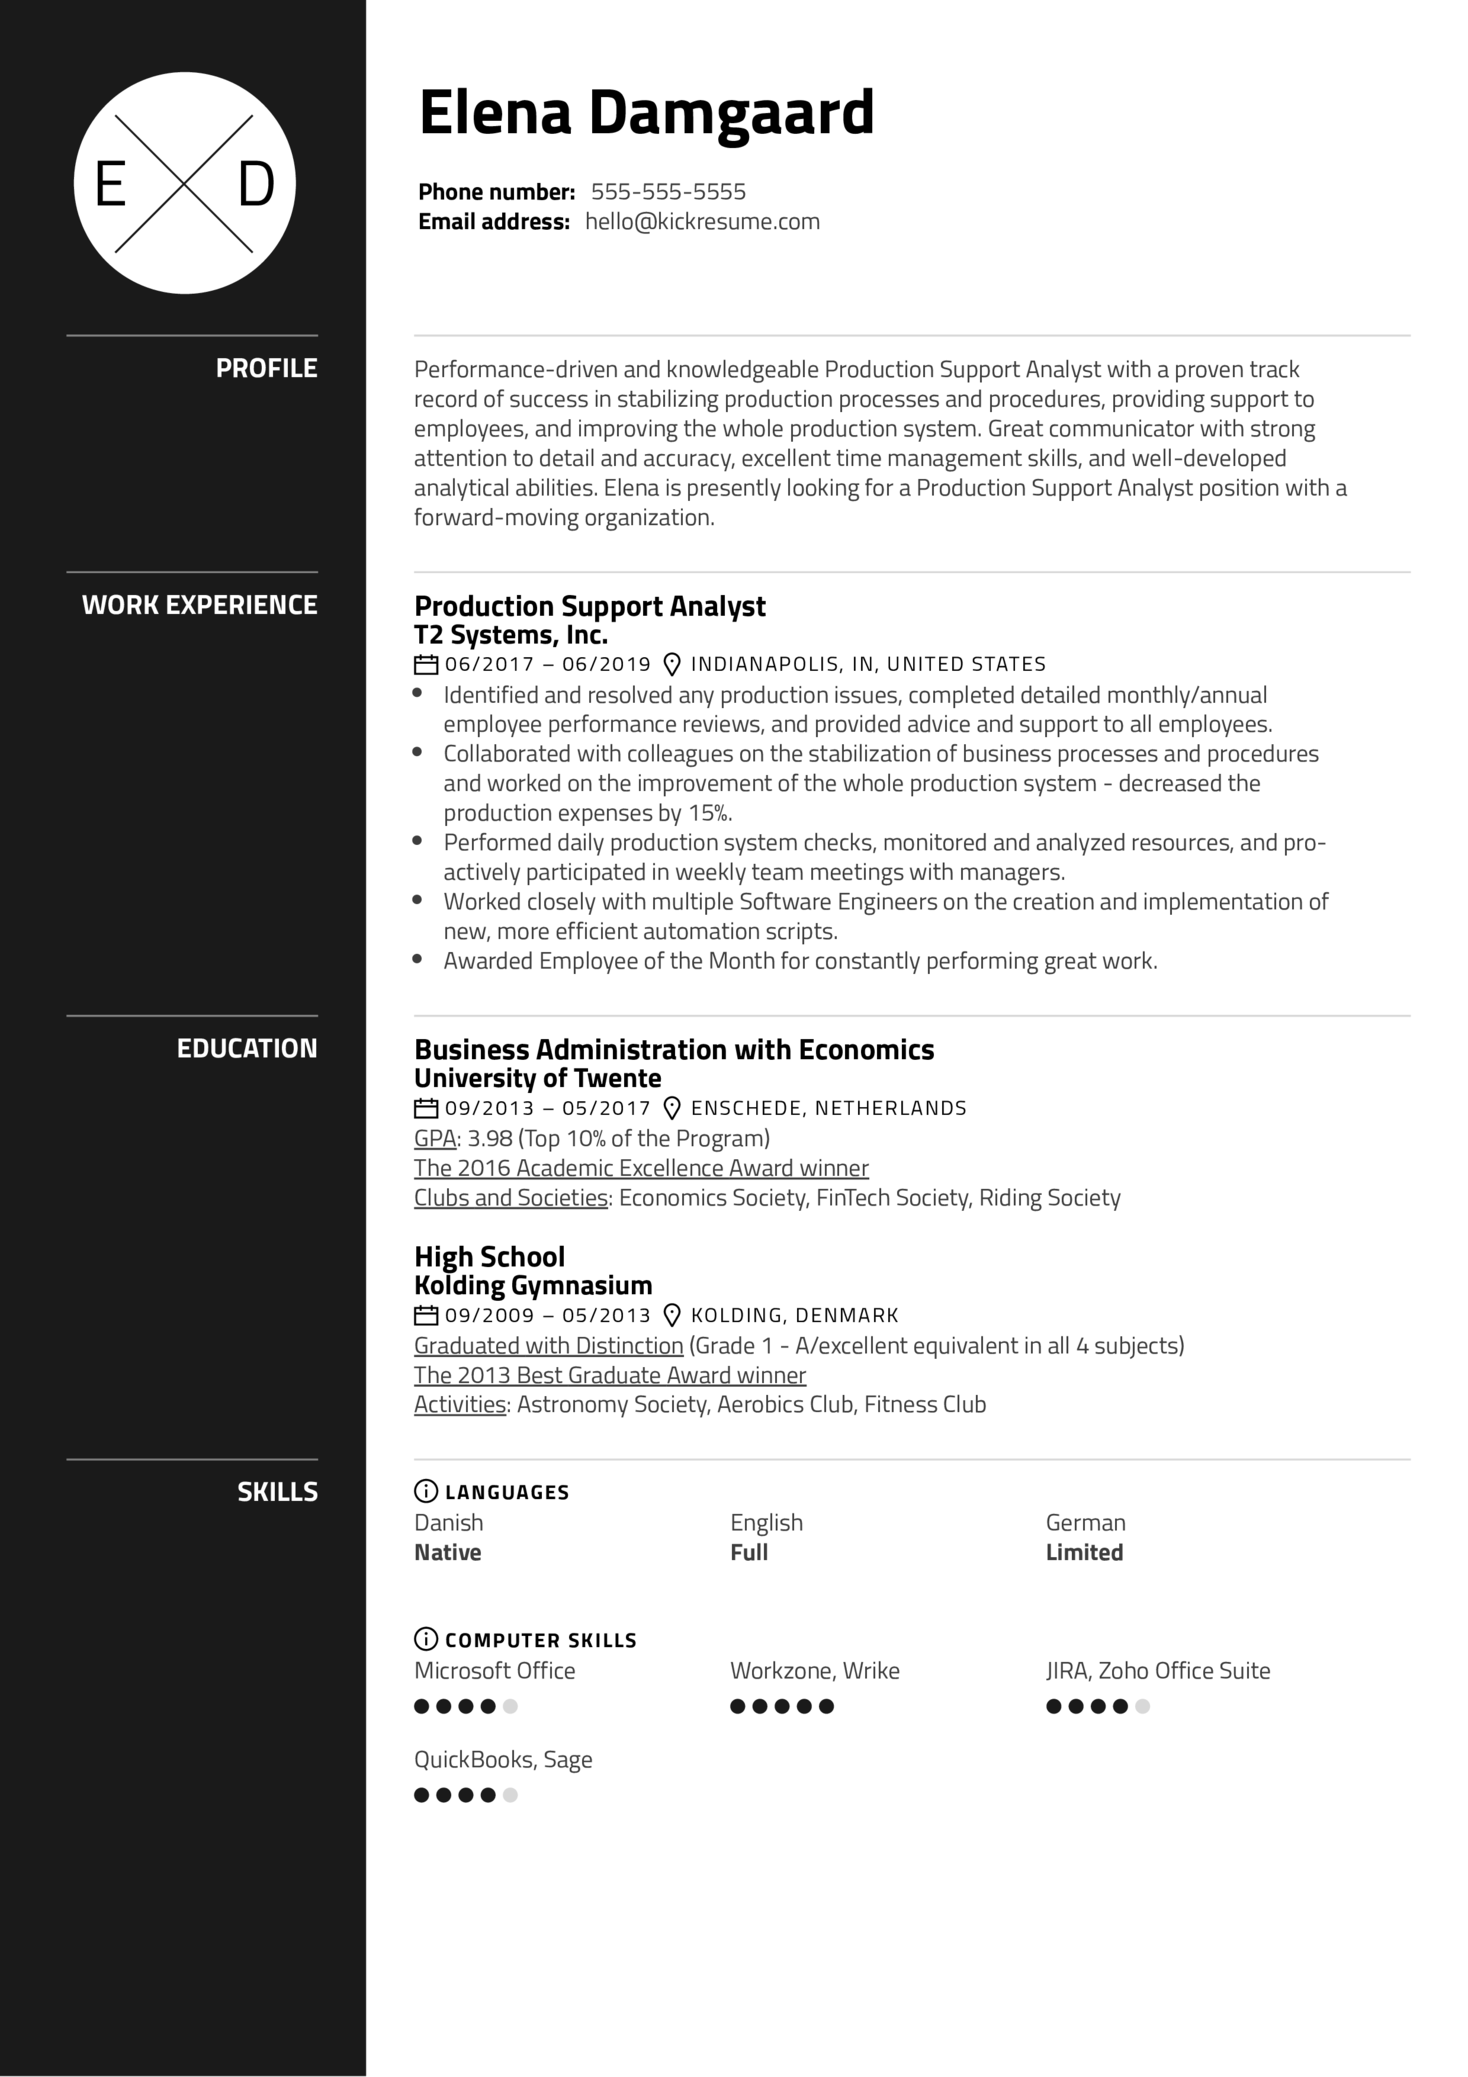 Production Support Analyst Resume Example Kickresume